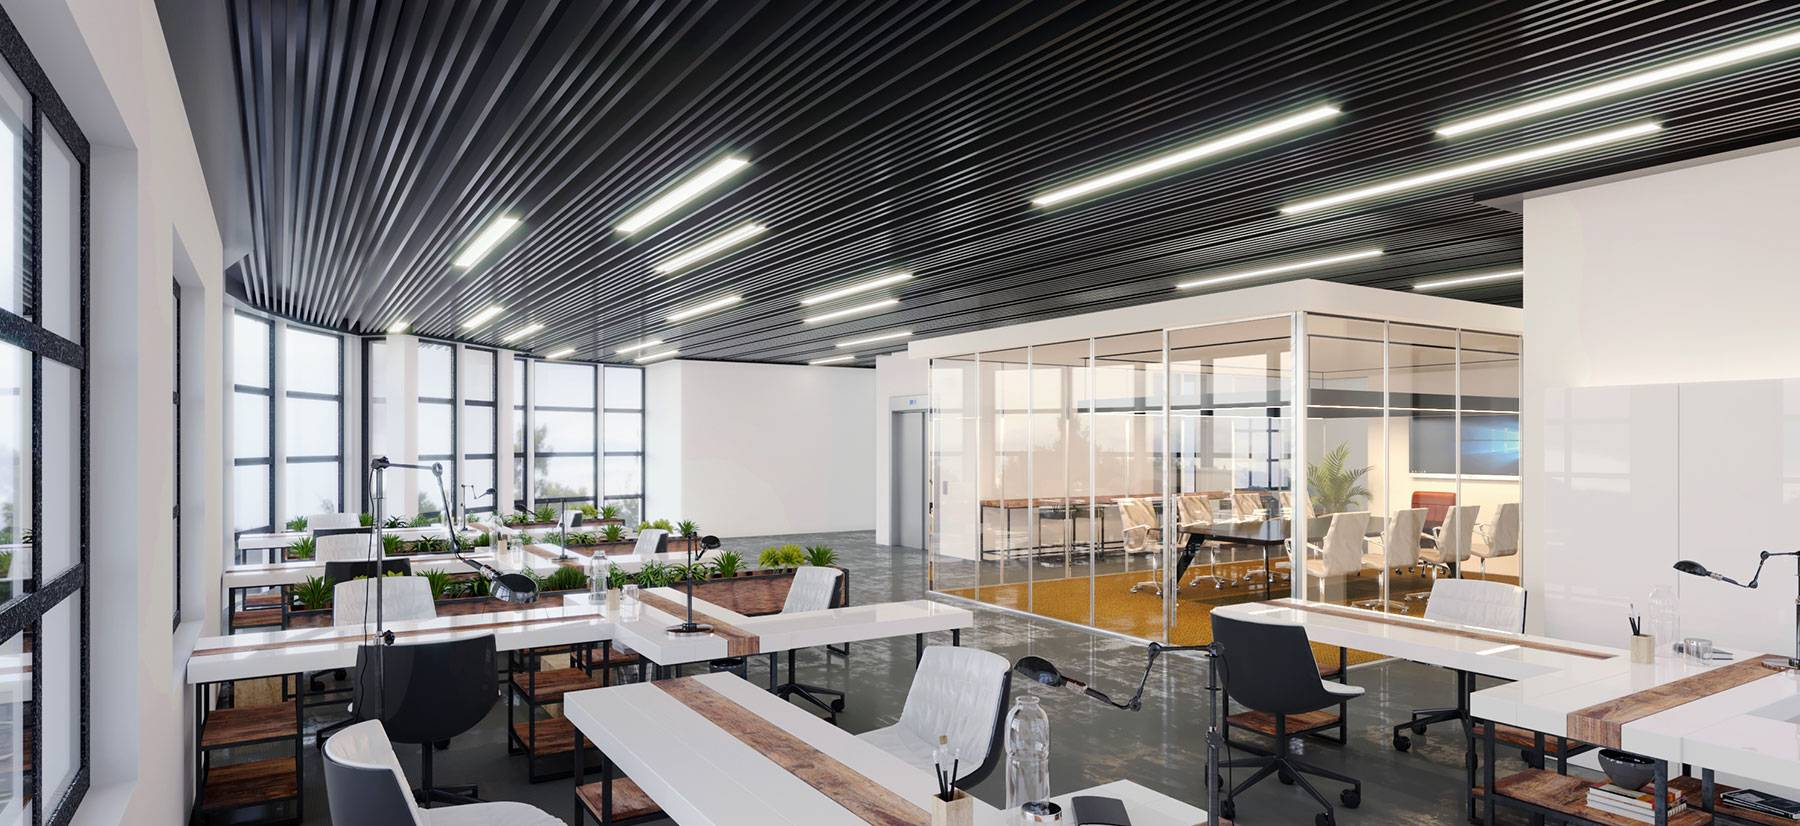 sample office project by the City government of Riverside